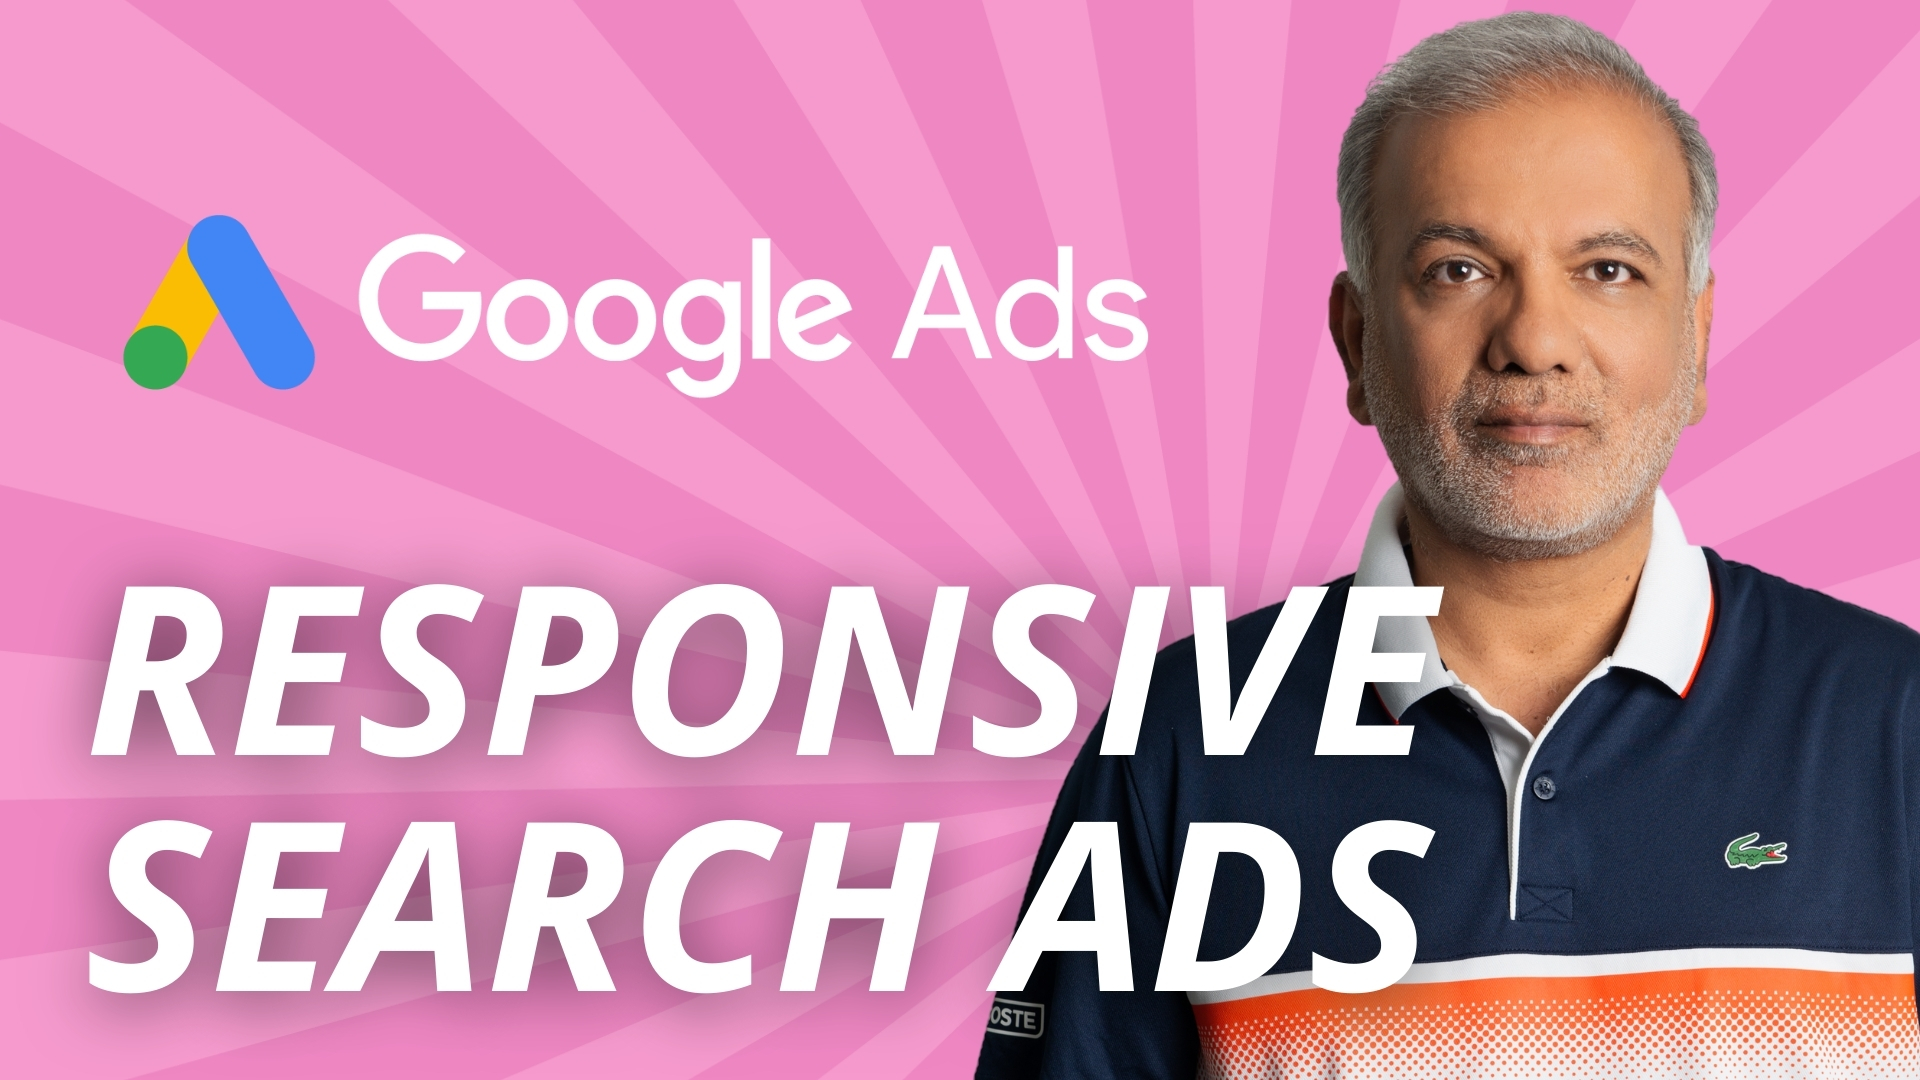 How To Create Effective Responsive Search Ads